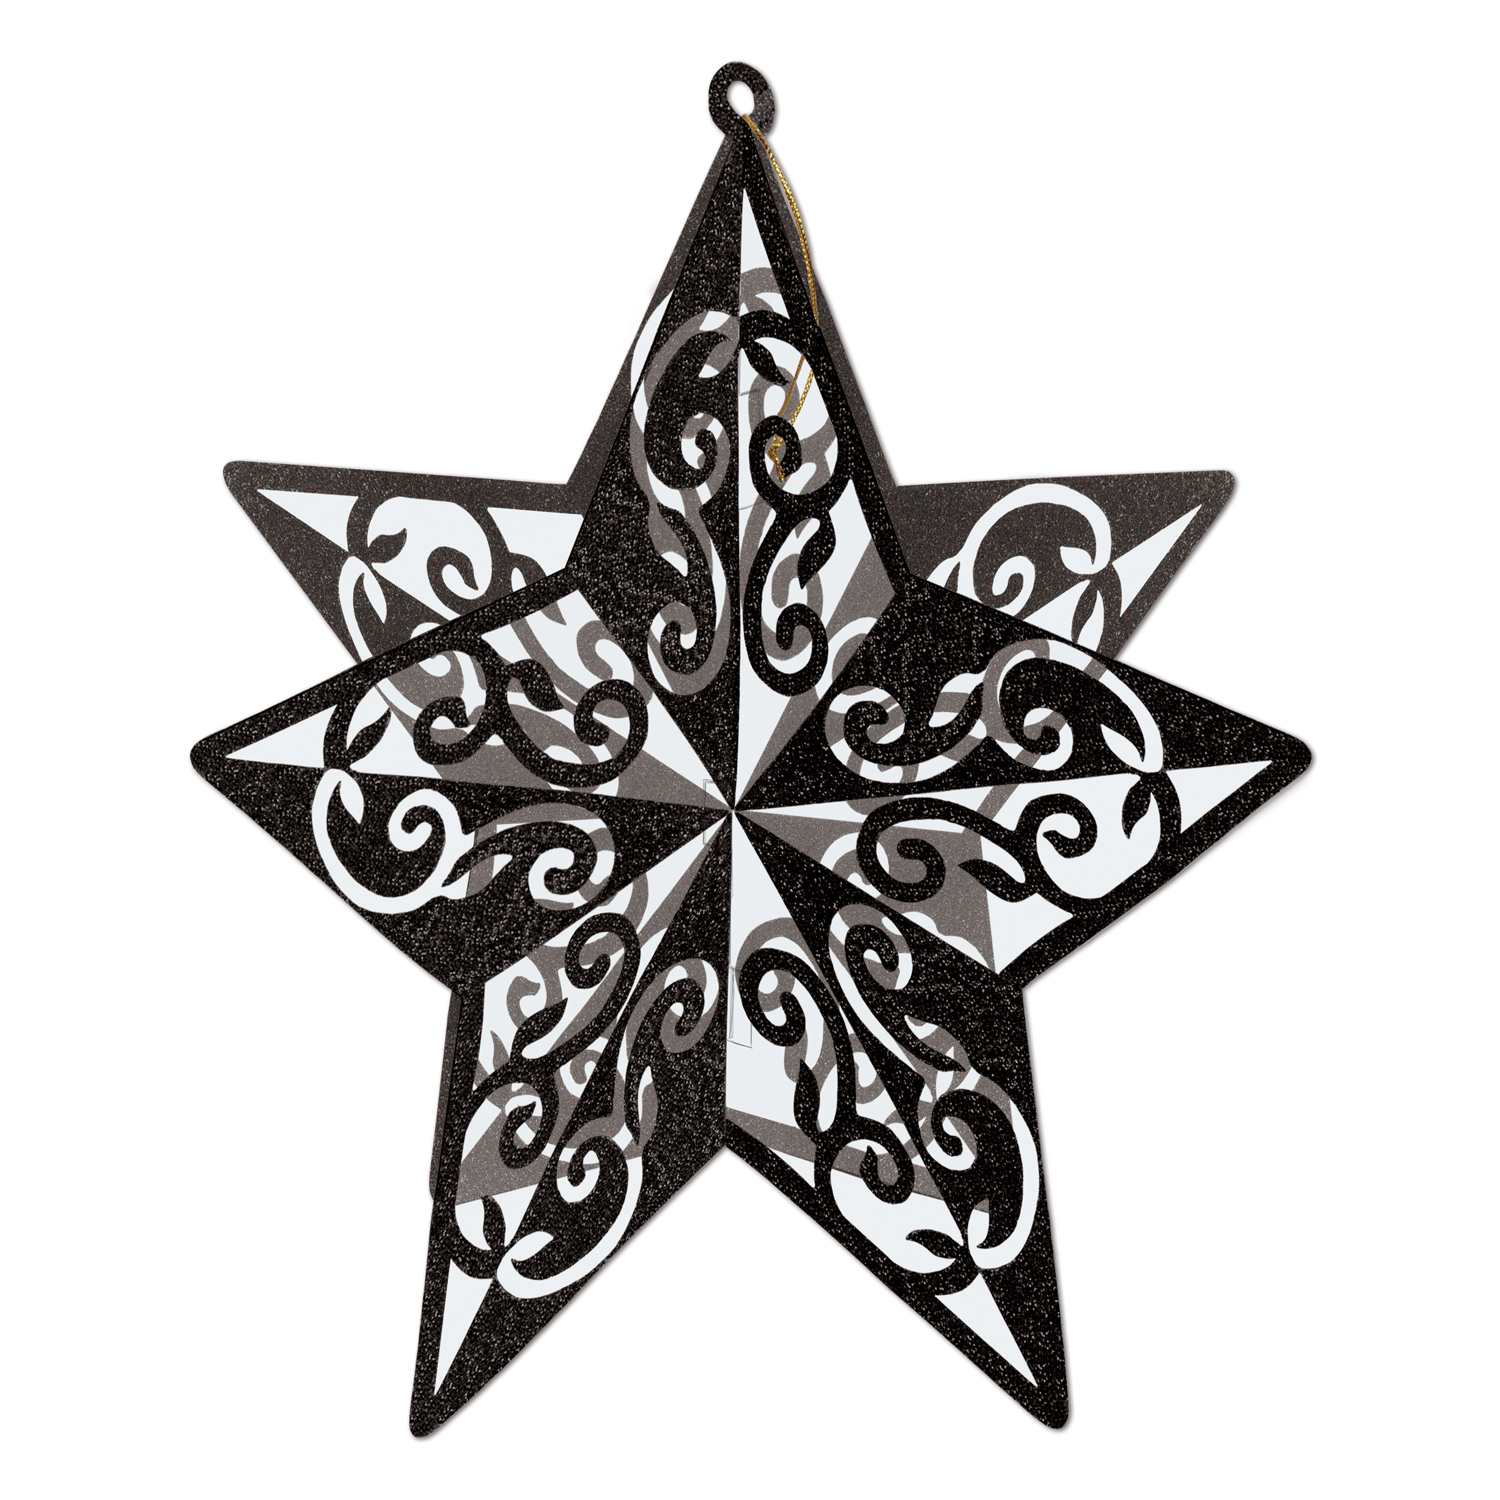 3-D Glittered Star Centerpiece 12in black